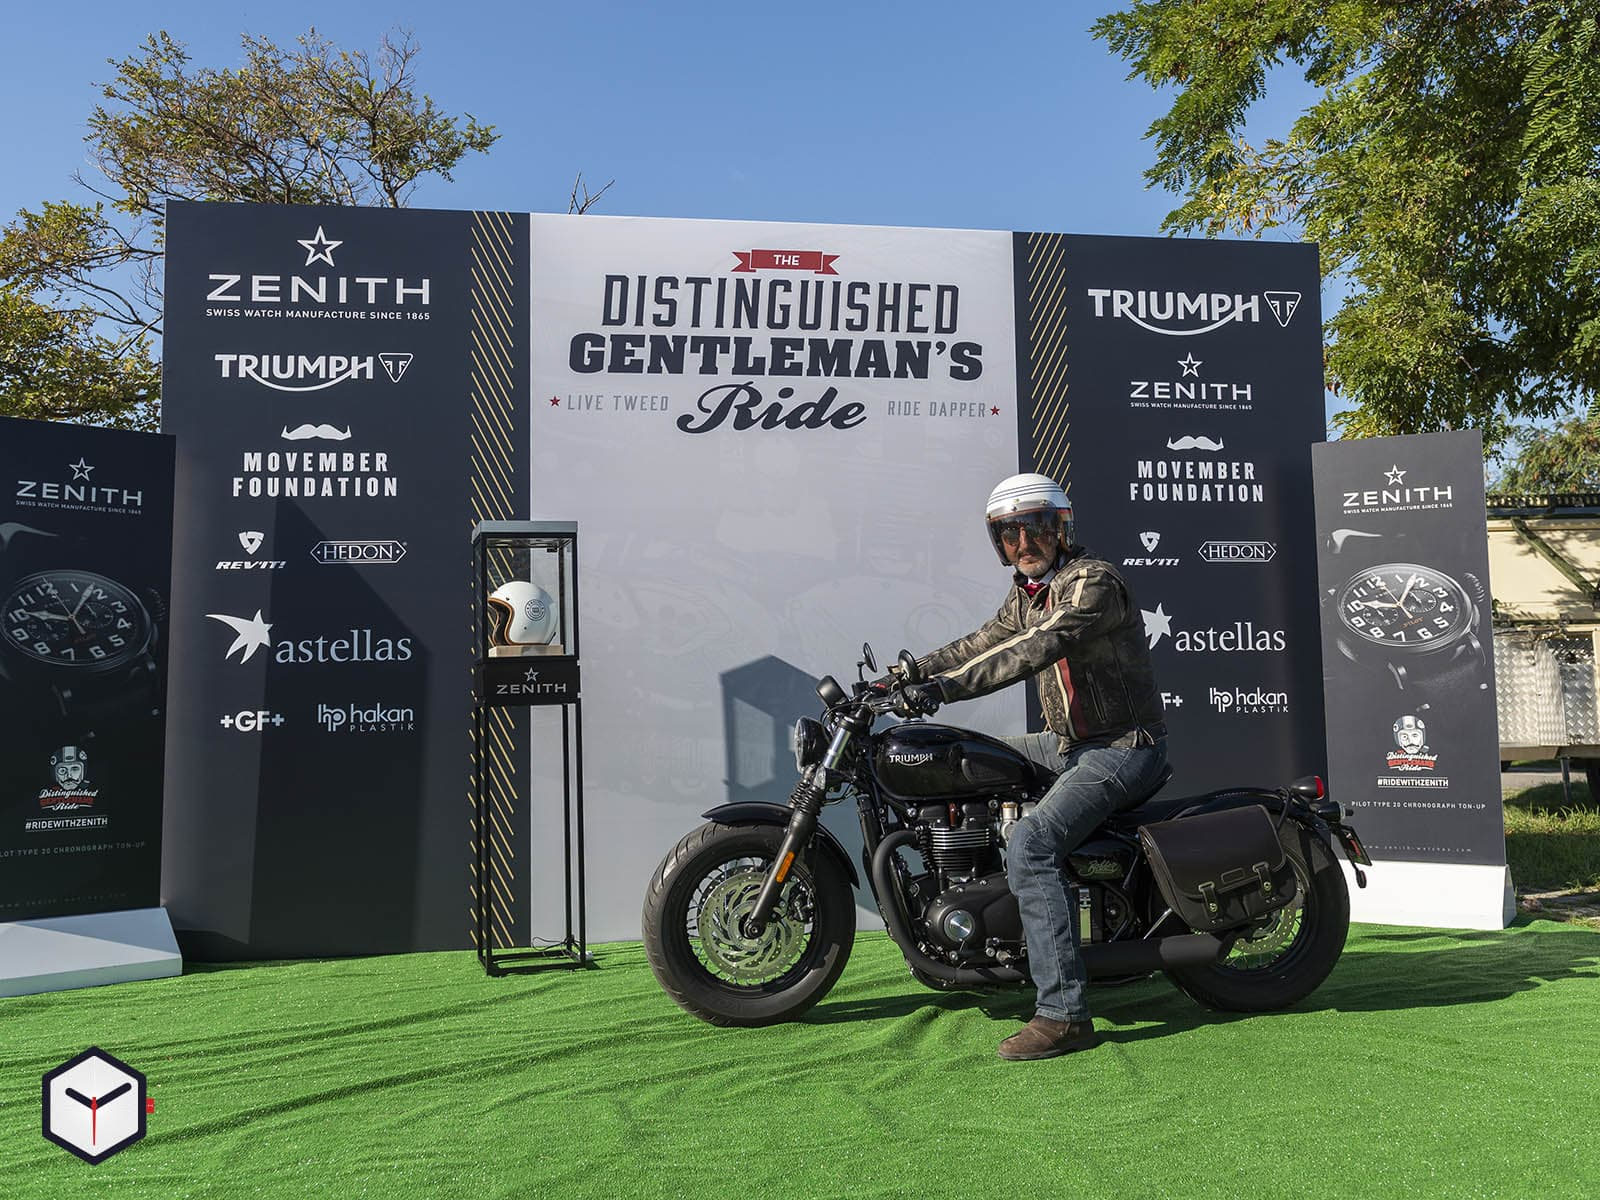 black-distinguished-gentleman-s-ride-1-.jpg